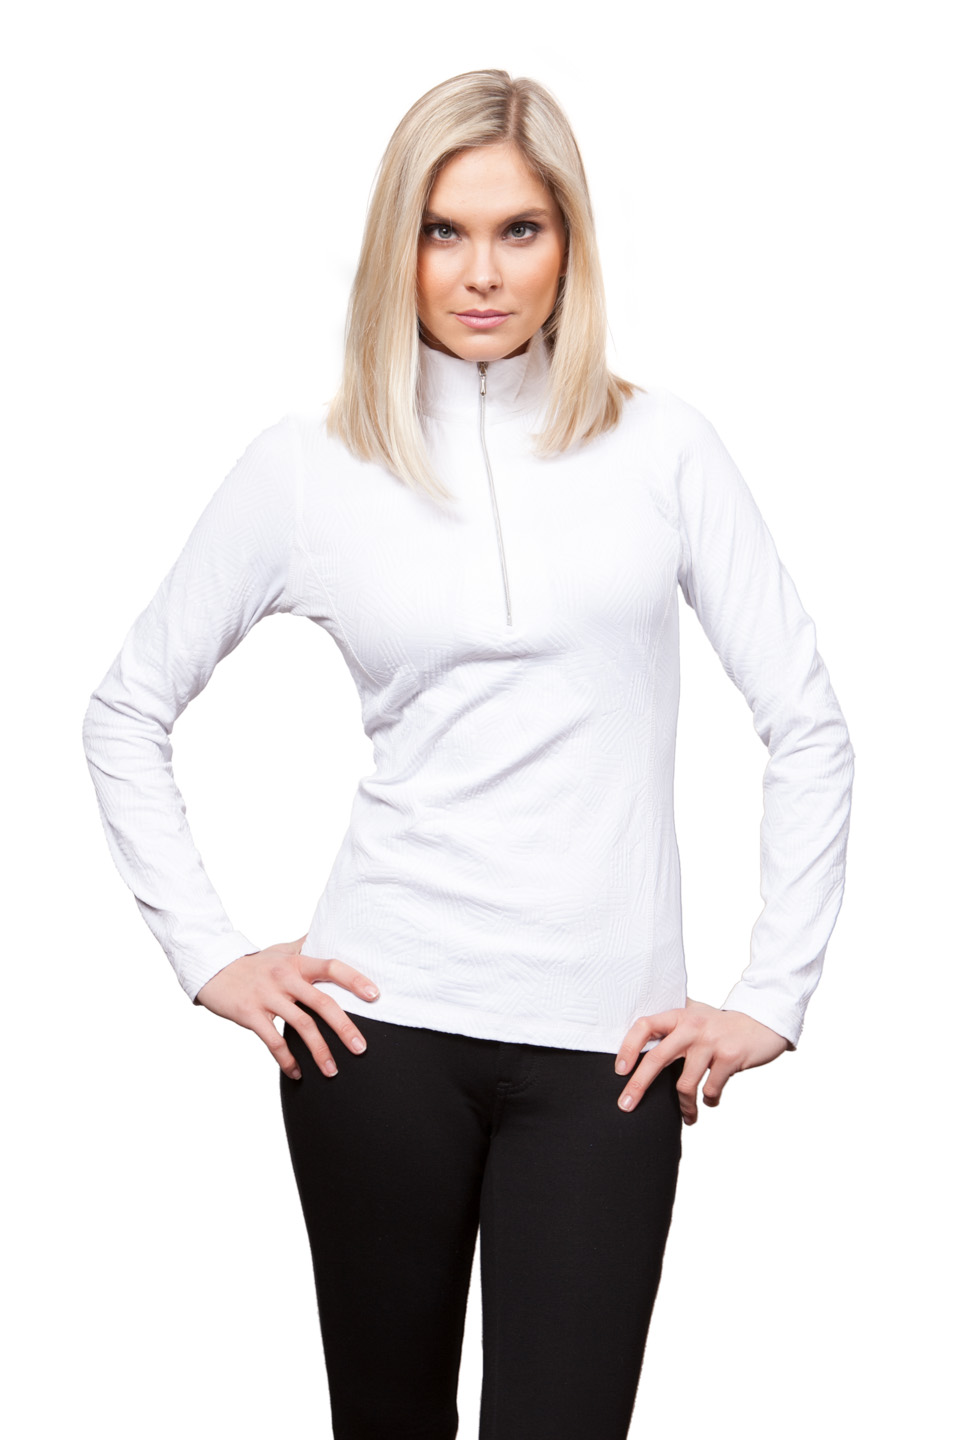 Copy of Style # 48738-16, p. 9<br>Domino Sport Jacq'd<br>Color: White, 3 colors